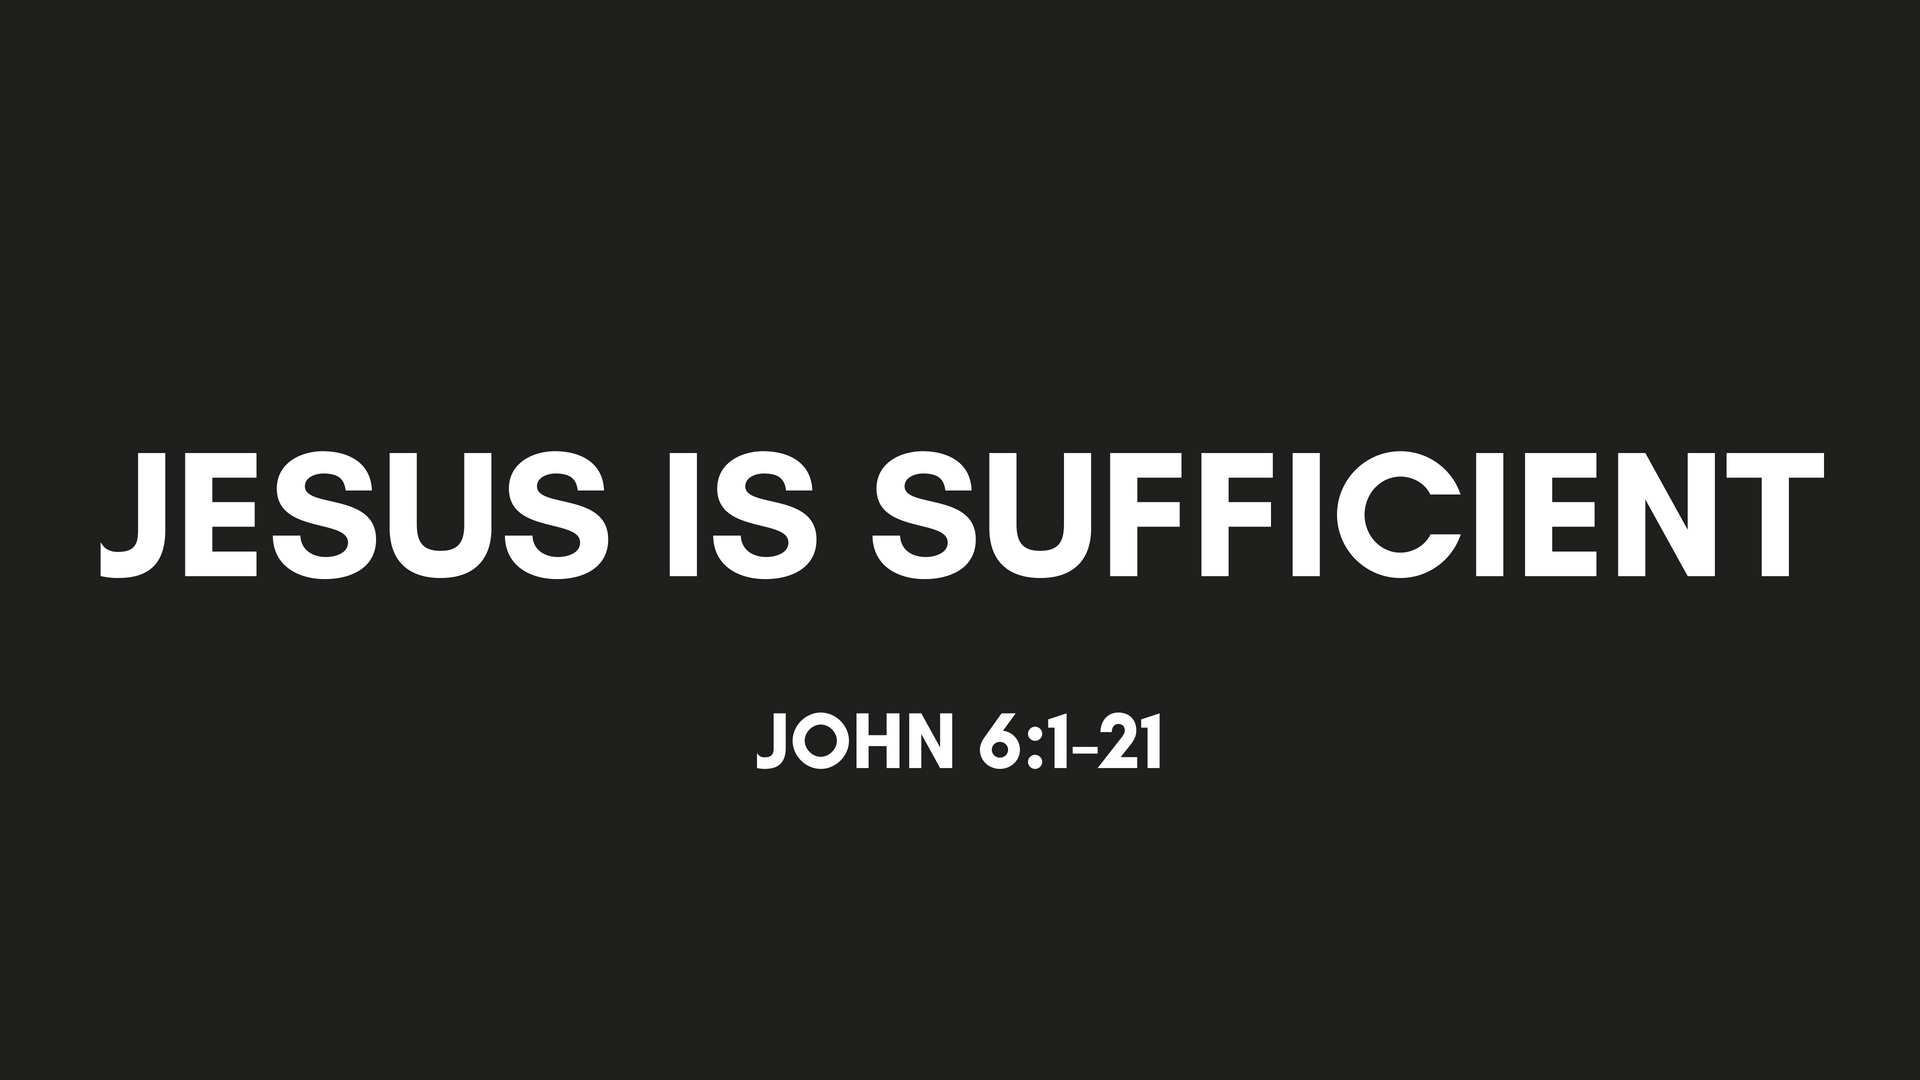 Jesus Is Sufficient.jpg